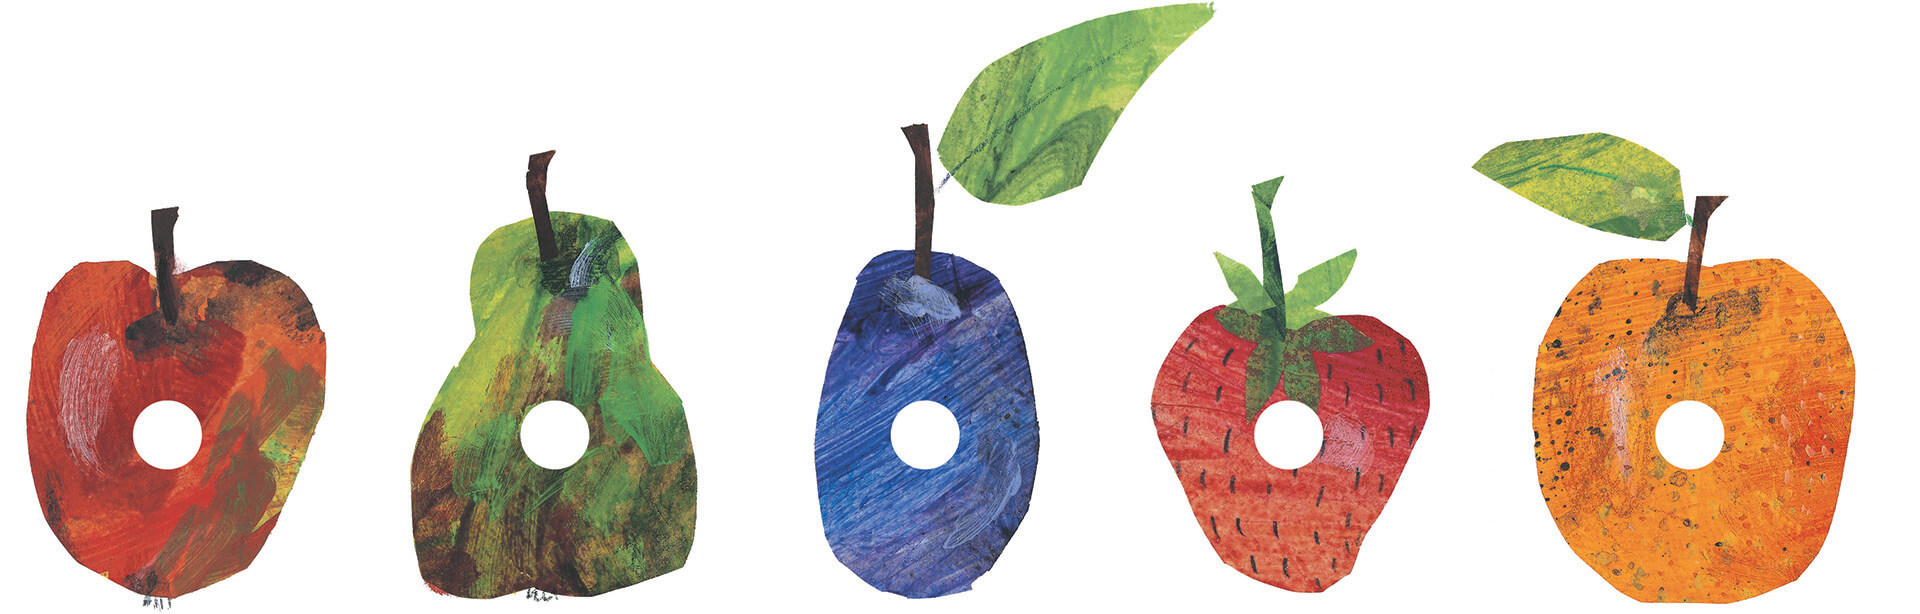 The Very Hungry Caterpillar Fruits at Dolly Parton's Imagination ...